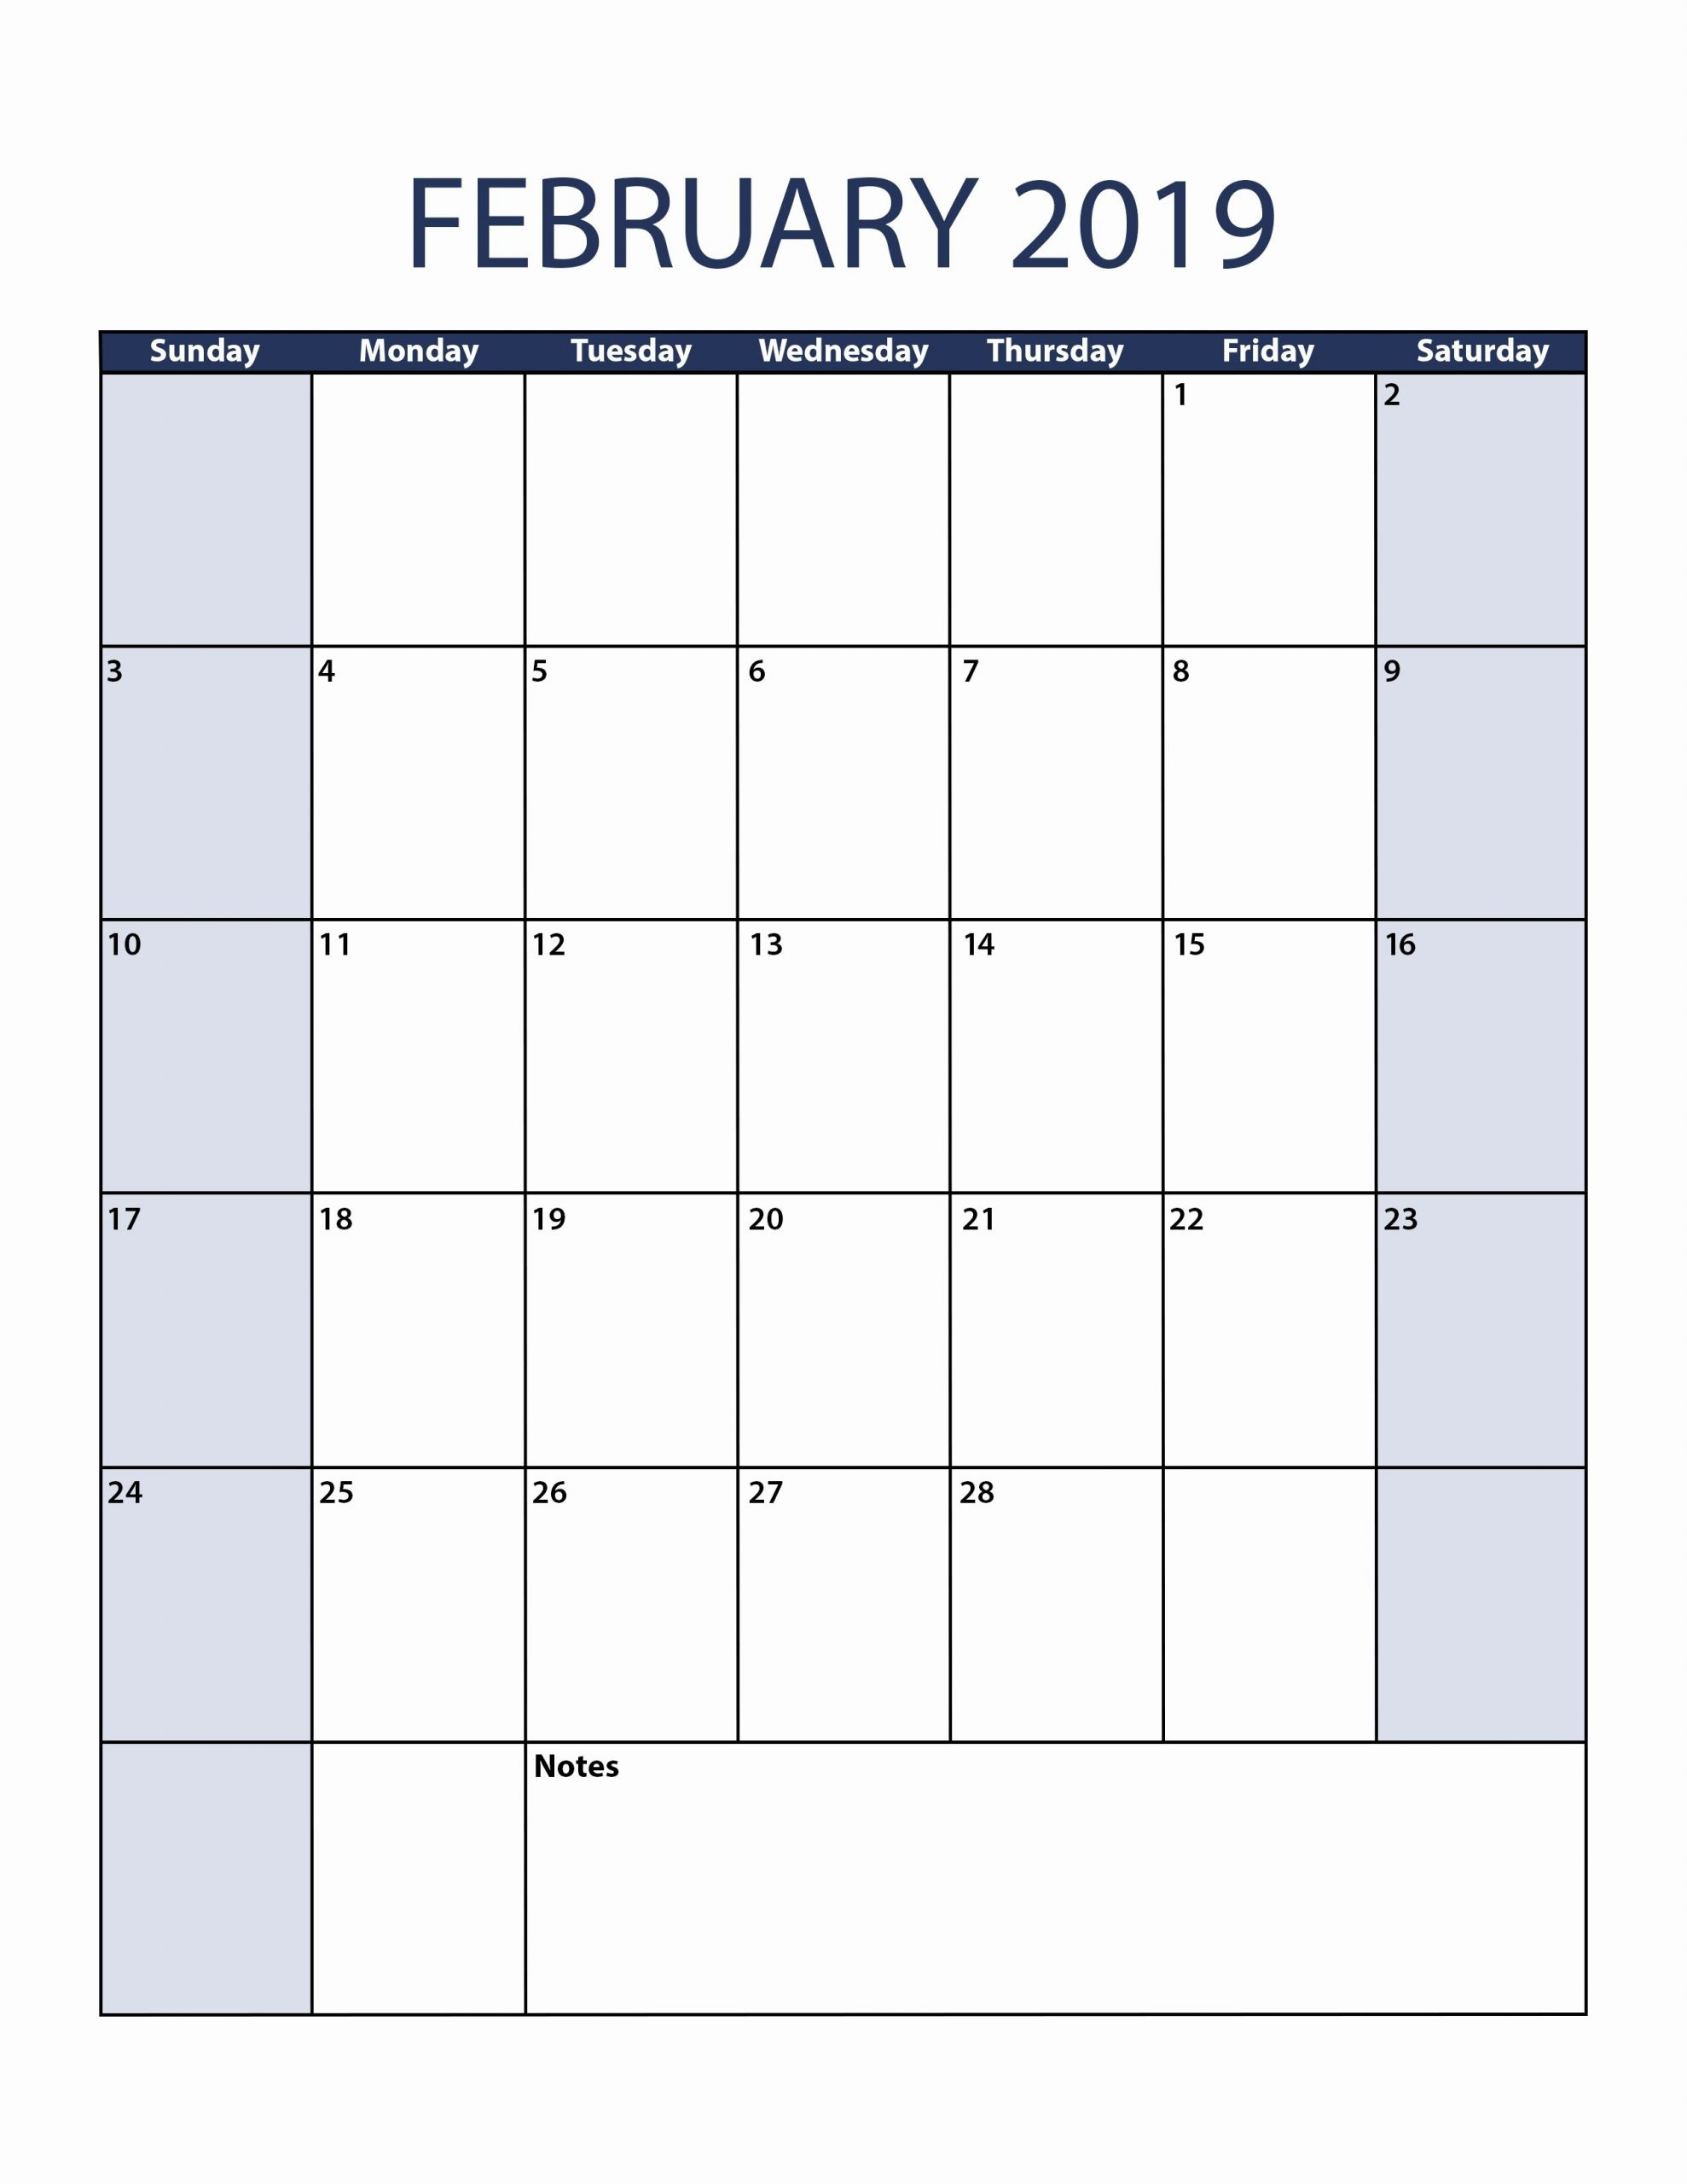 February 2019 Calendar Vertical | Calendar 2019 Printable